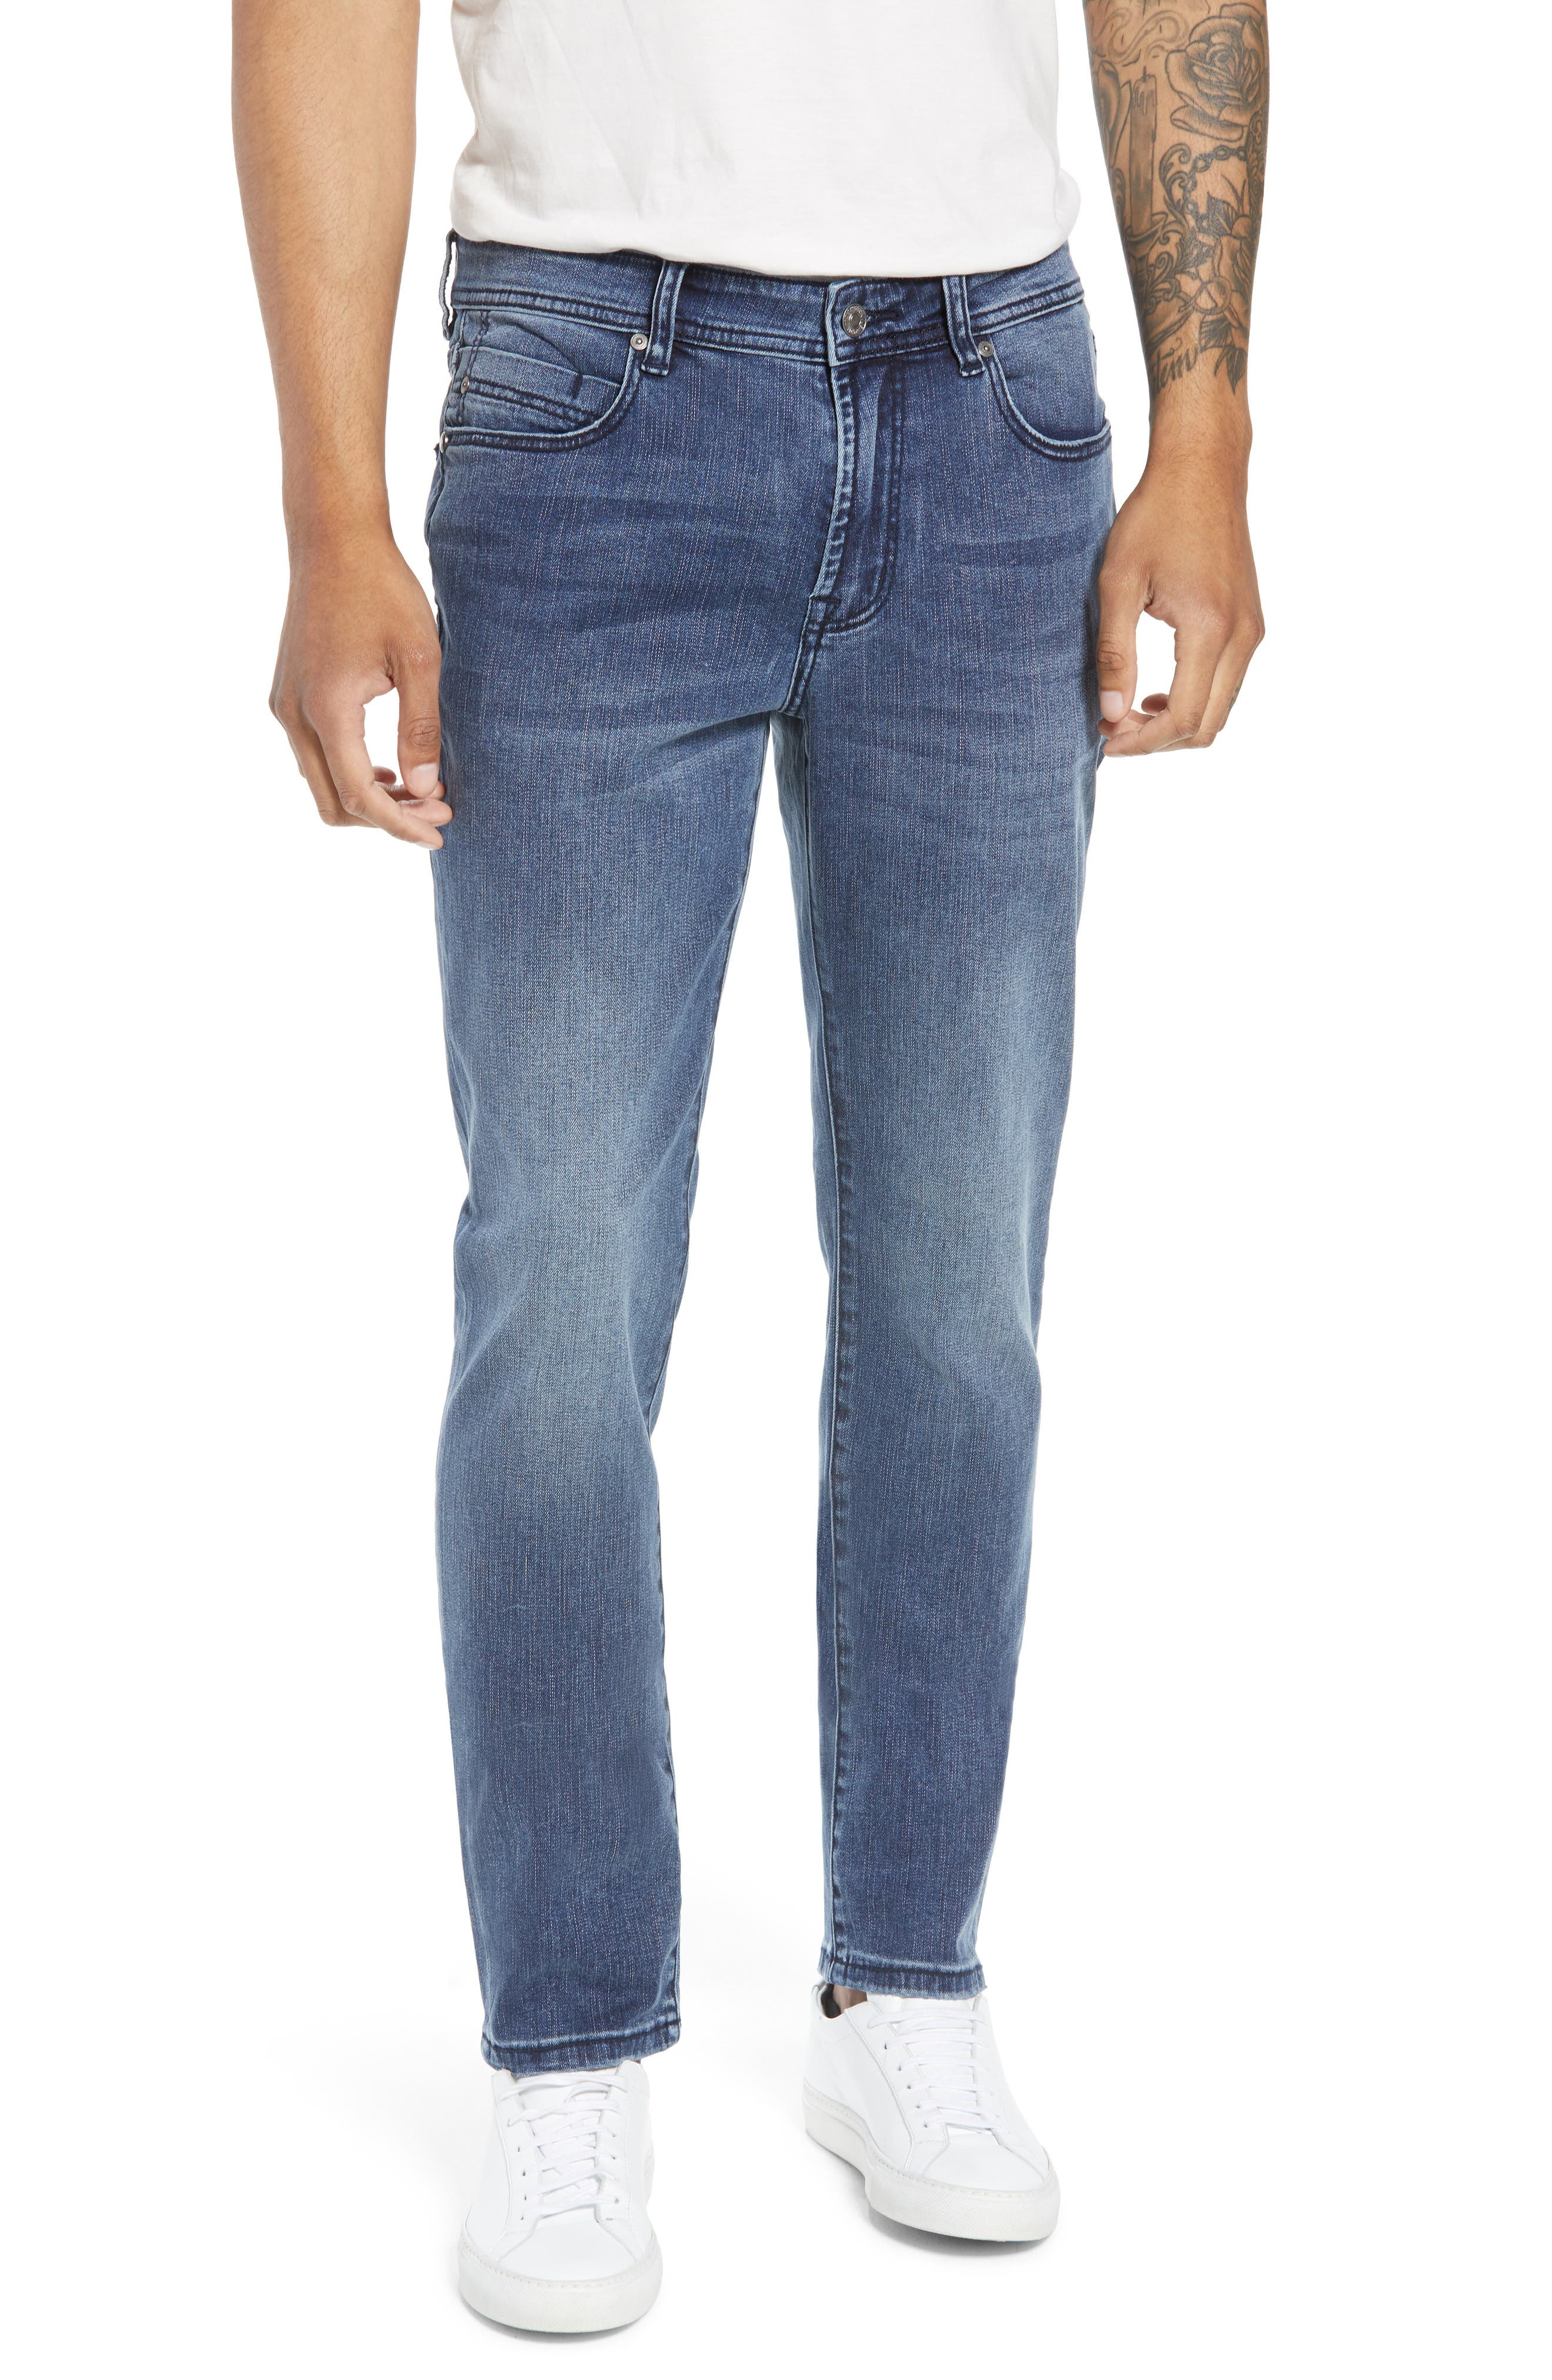 Liverpool Jeans Co. Slim Straight Leg Jeans (Southhaven Mid Blue)